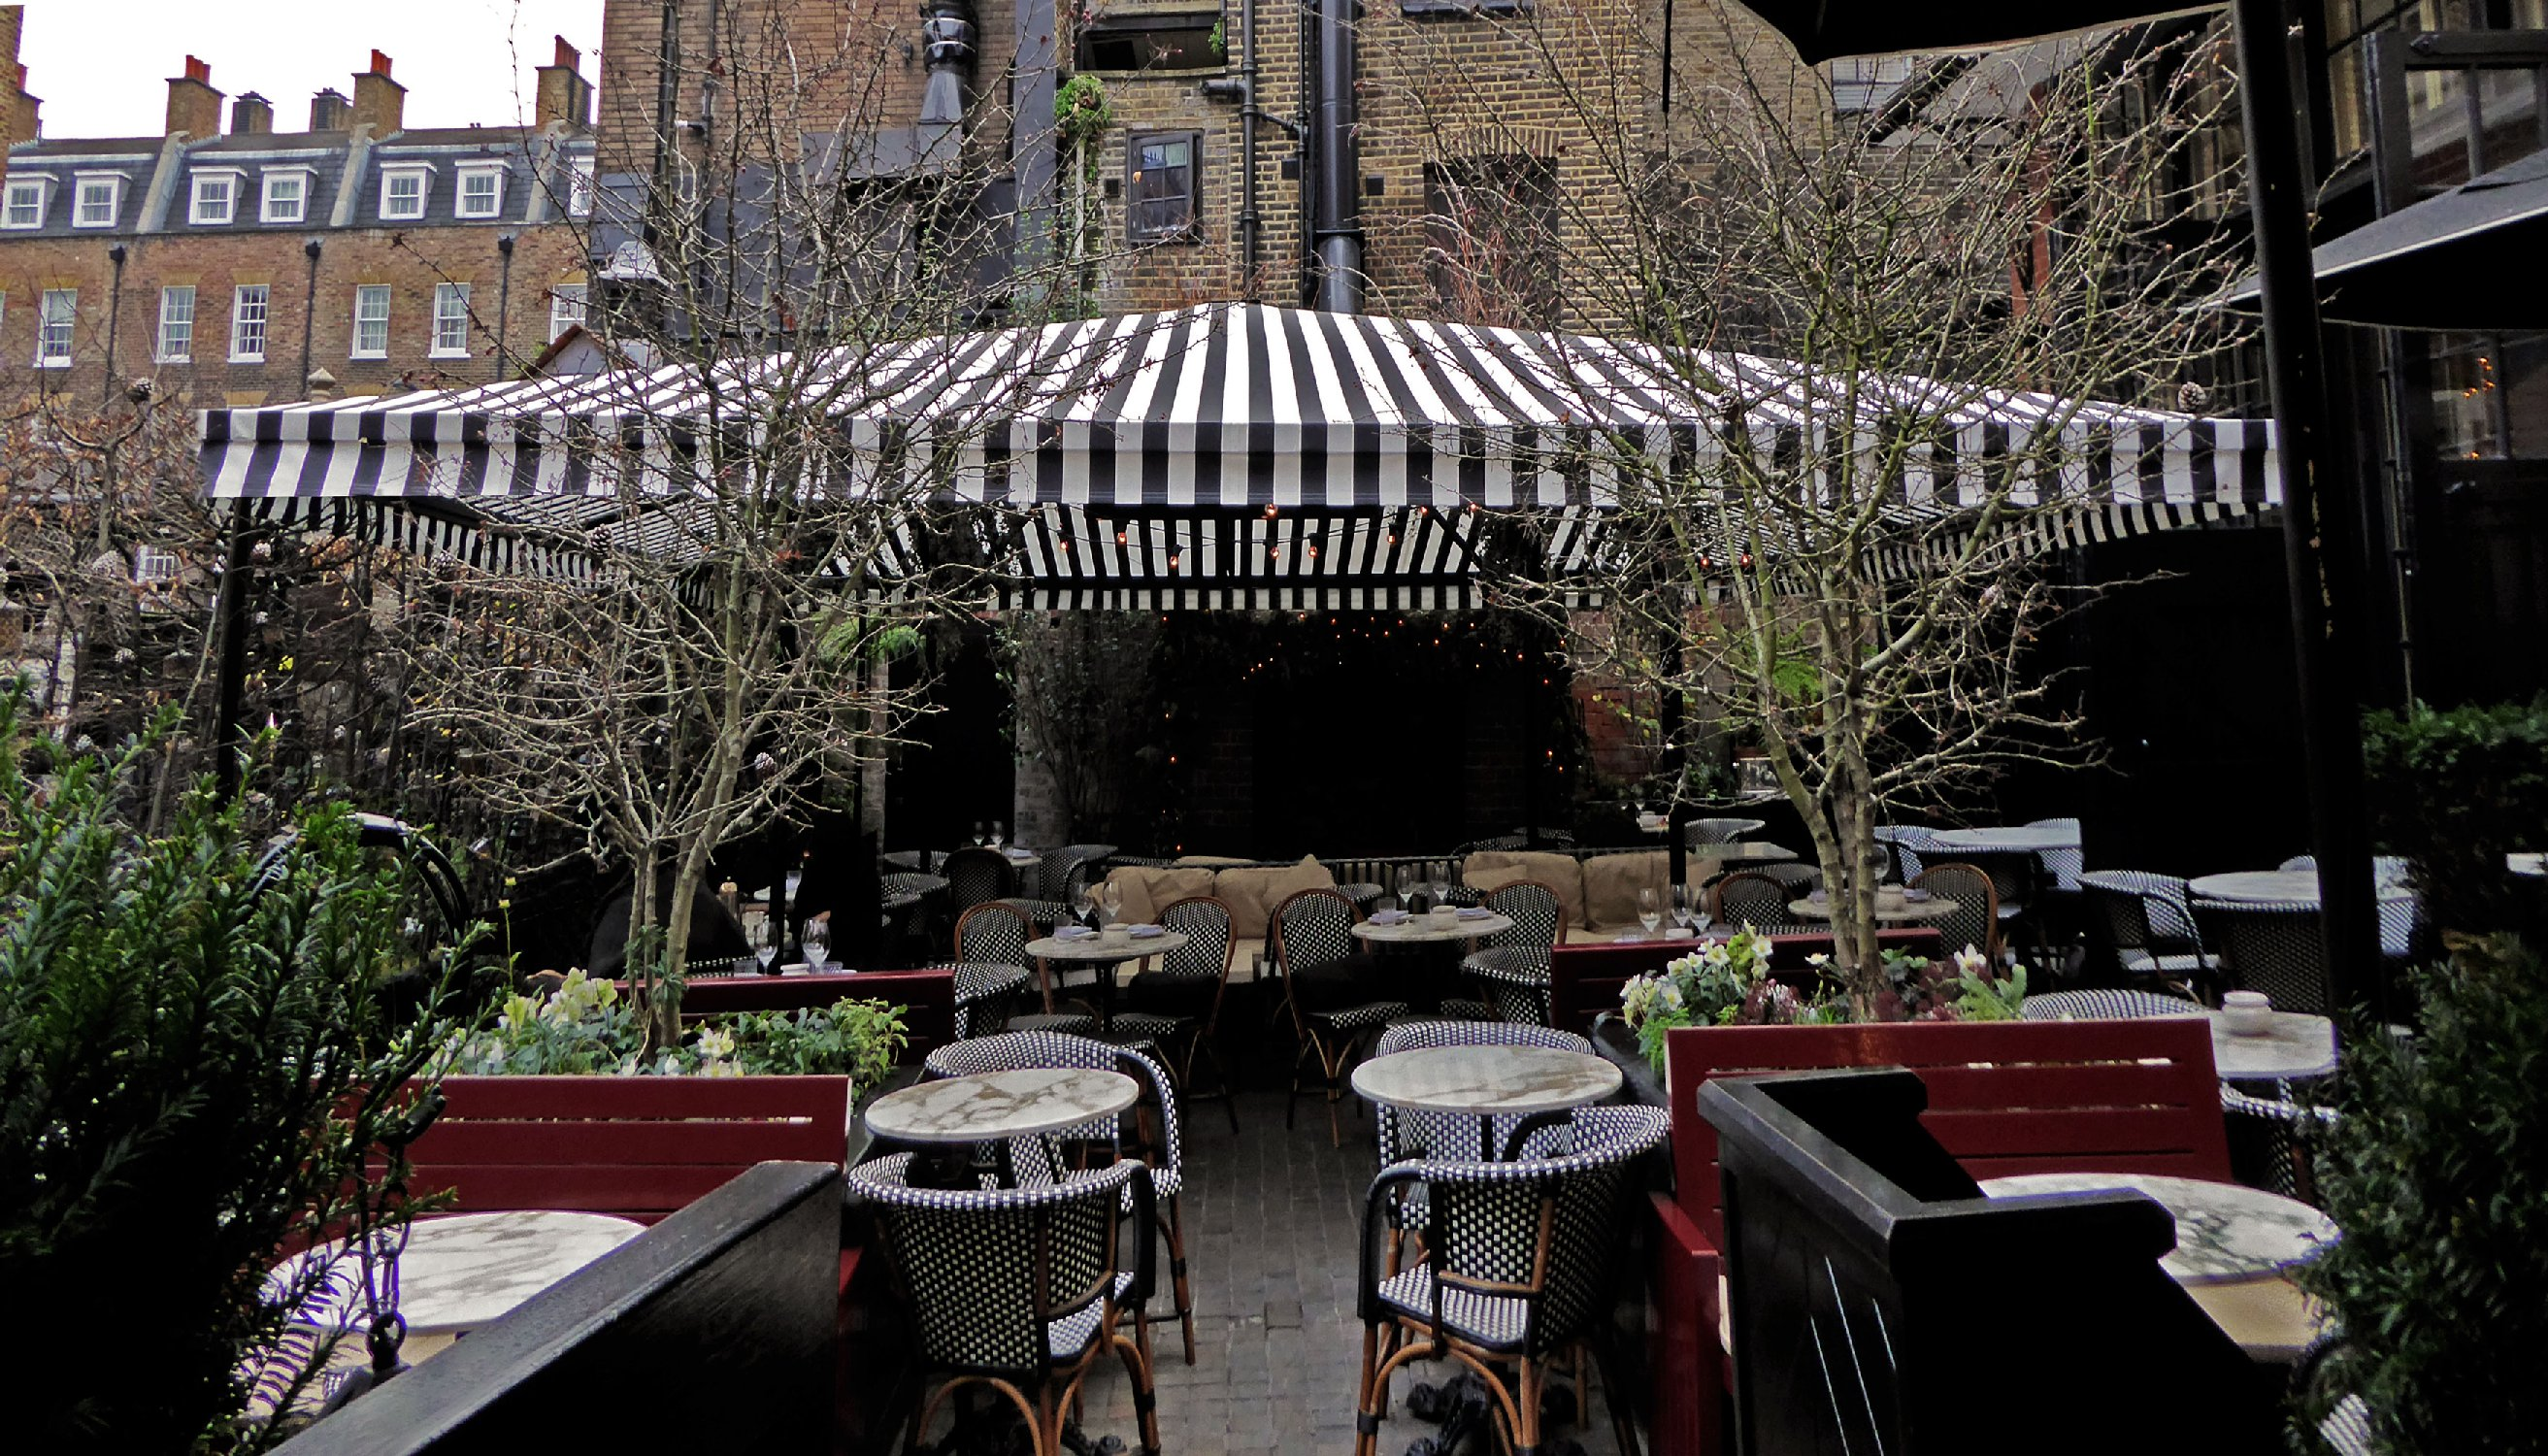 Chiltern Firehouse canopy